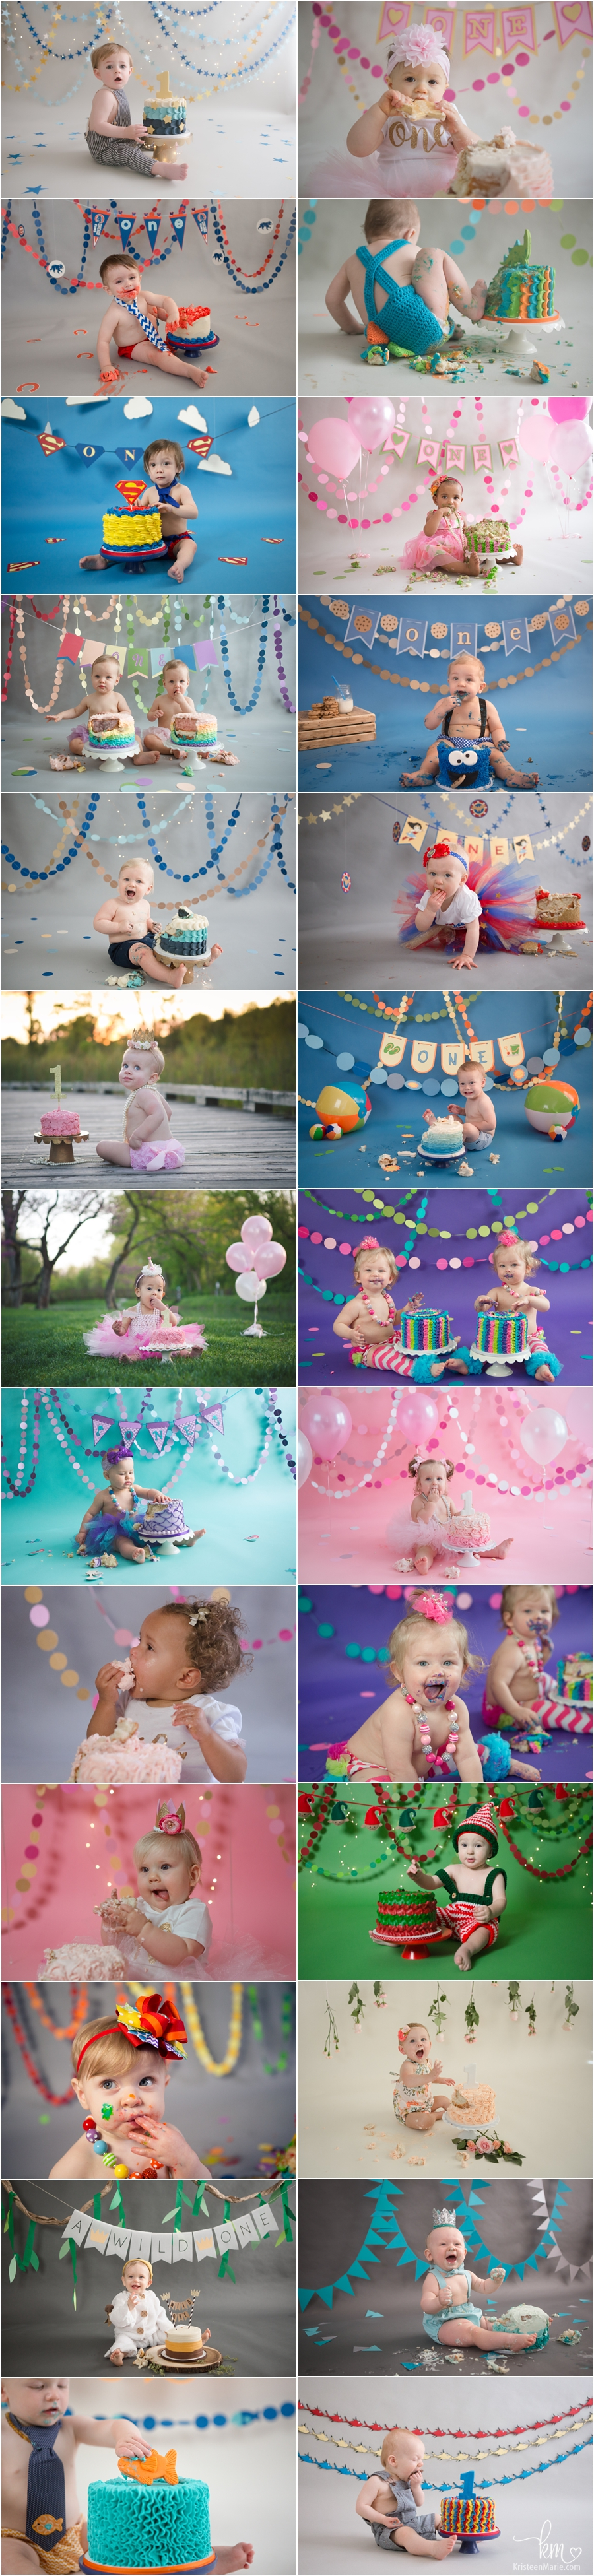 1st Birthday Cake Smash Session Ideas - Lots of Birthday Cake Smash Sessions by KristeenMarie Photography